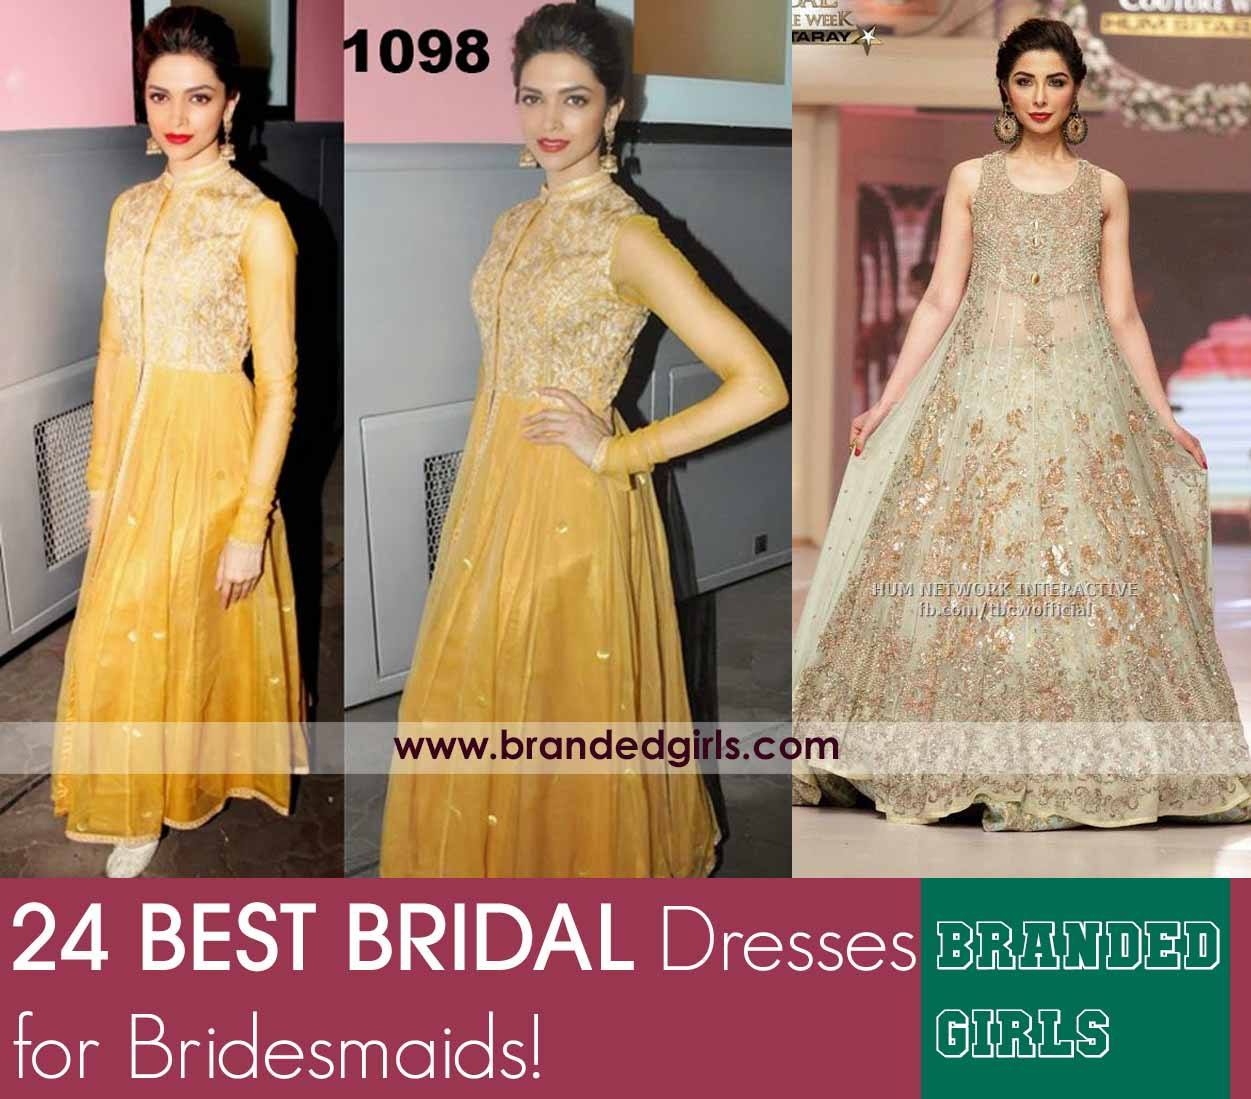 polyvore-sample Indian Bridesmaid Dresses-24 Latest Dresses Designs for Bridesmaids